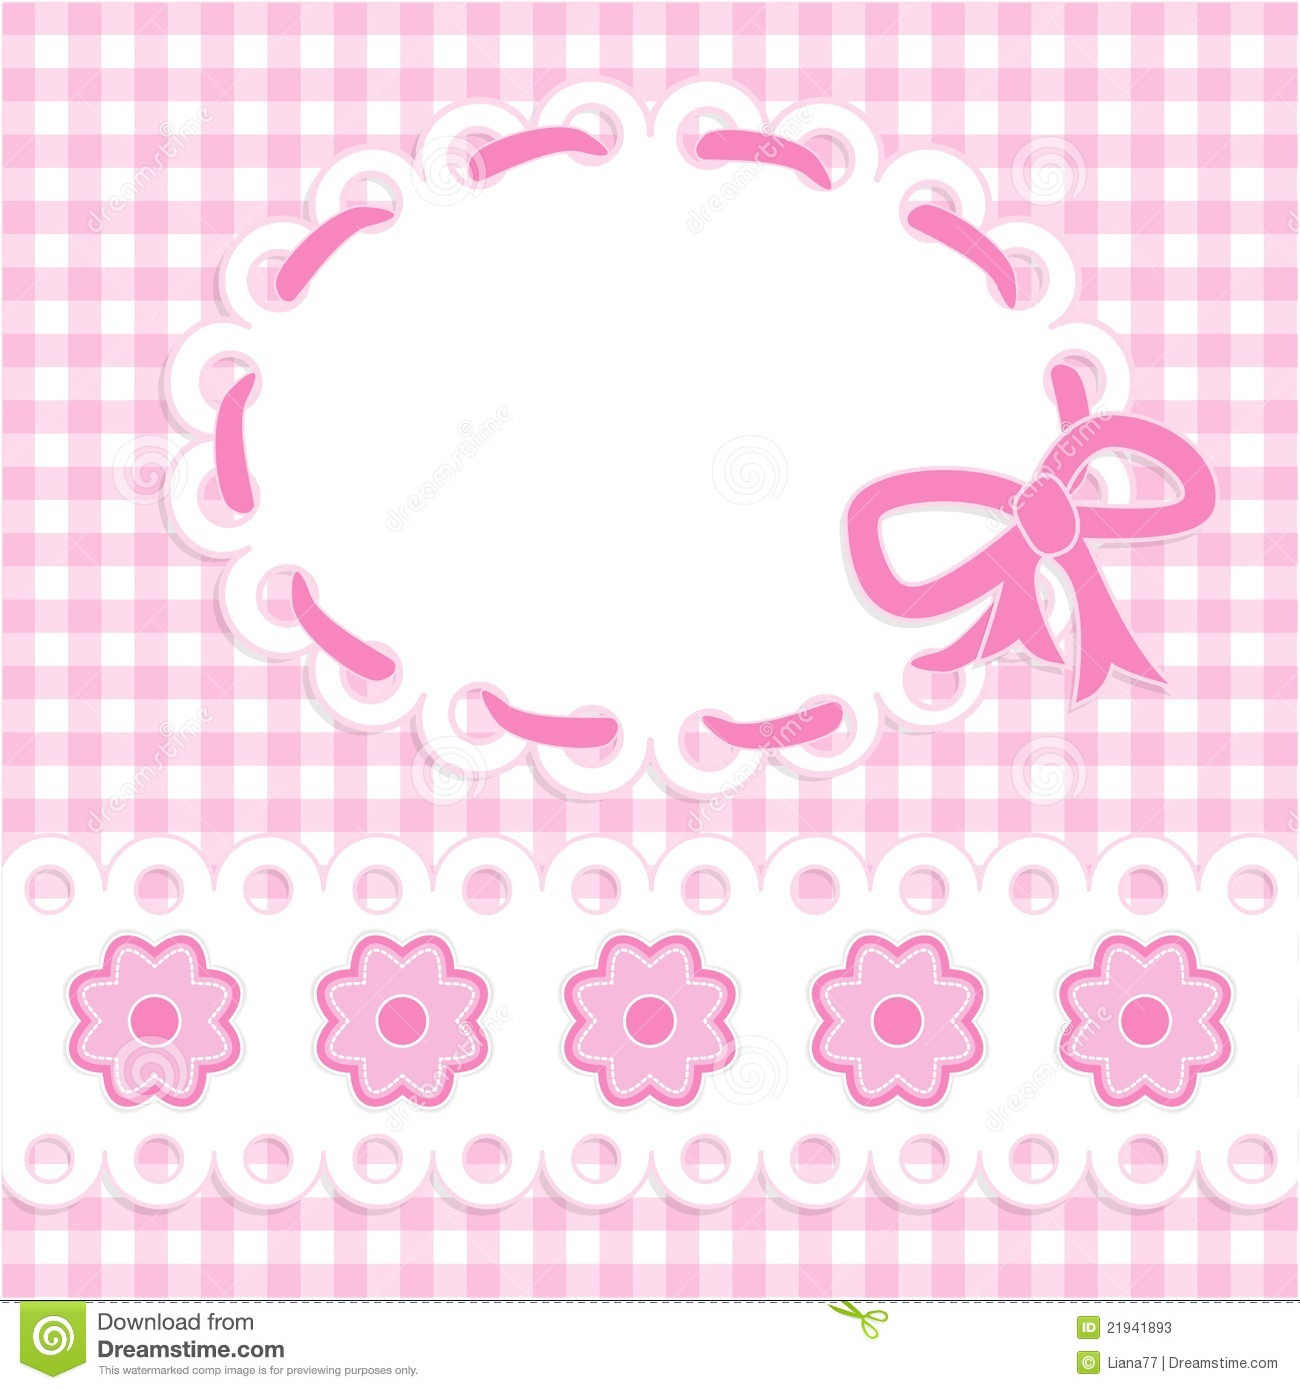 Thank you ideas for baby shower